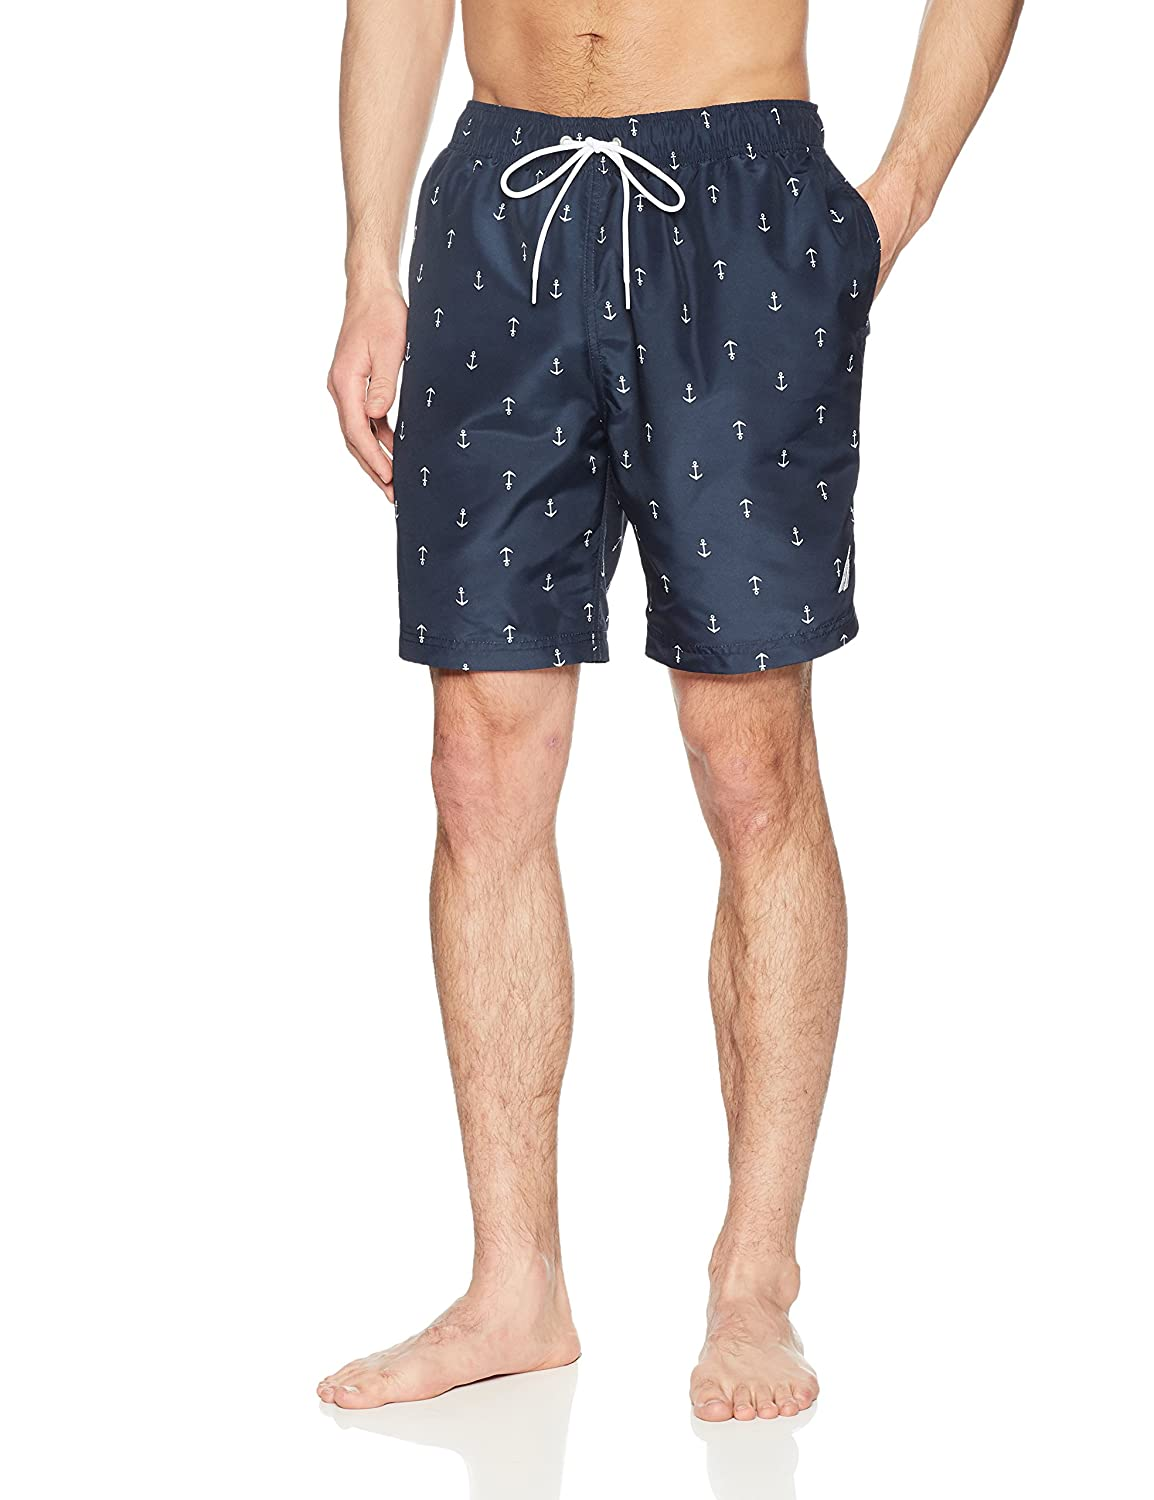 402b0fbaaa Nautica Men's's Quick Dry All Over Classic Anchor Print Swim Trunk:  Amazon.co.uk: Clothing